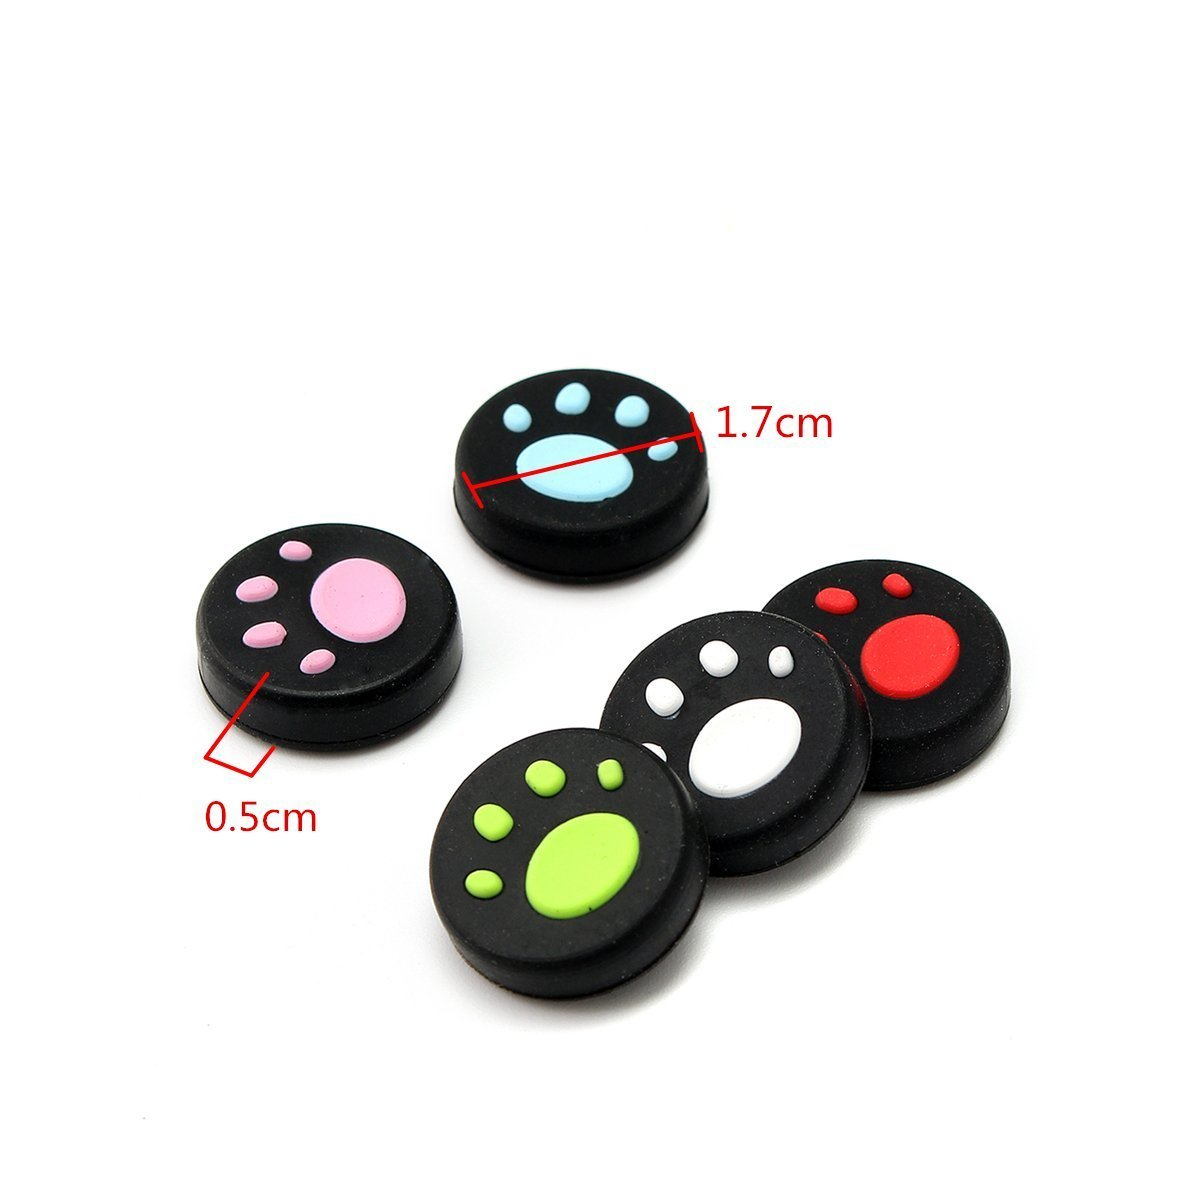 New 2PCS Silicone Anti-slip Thumb Grip Stick Cover Joystick Caps For Nintendo Switch NX NS Joy-Con Controller -Cat Paw Red